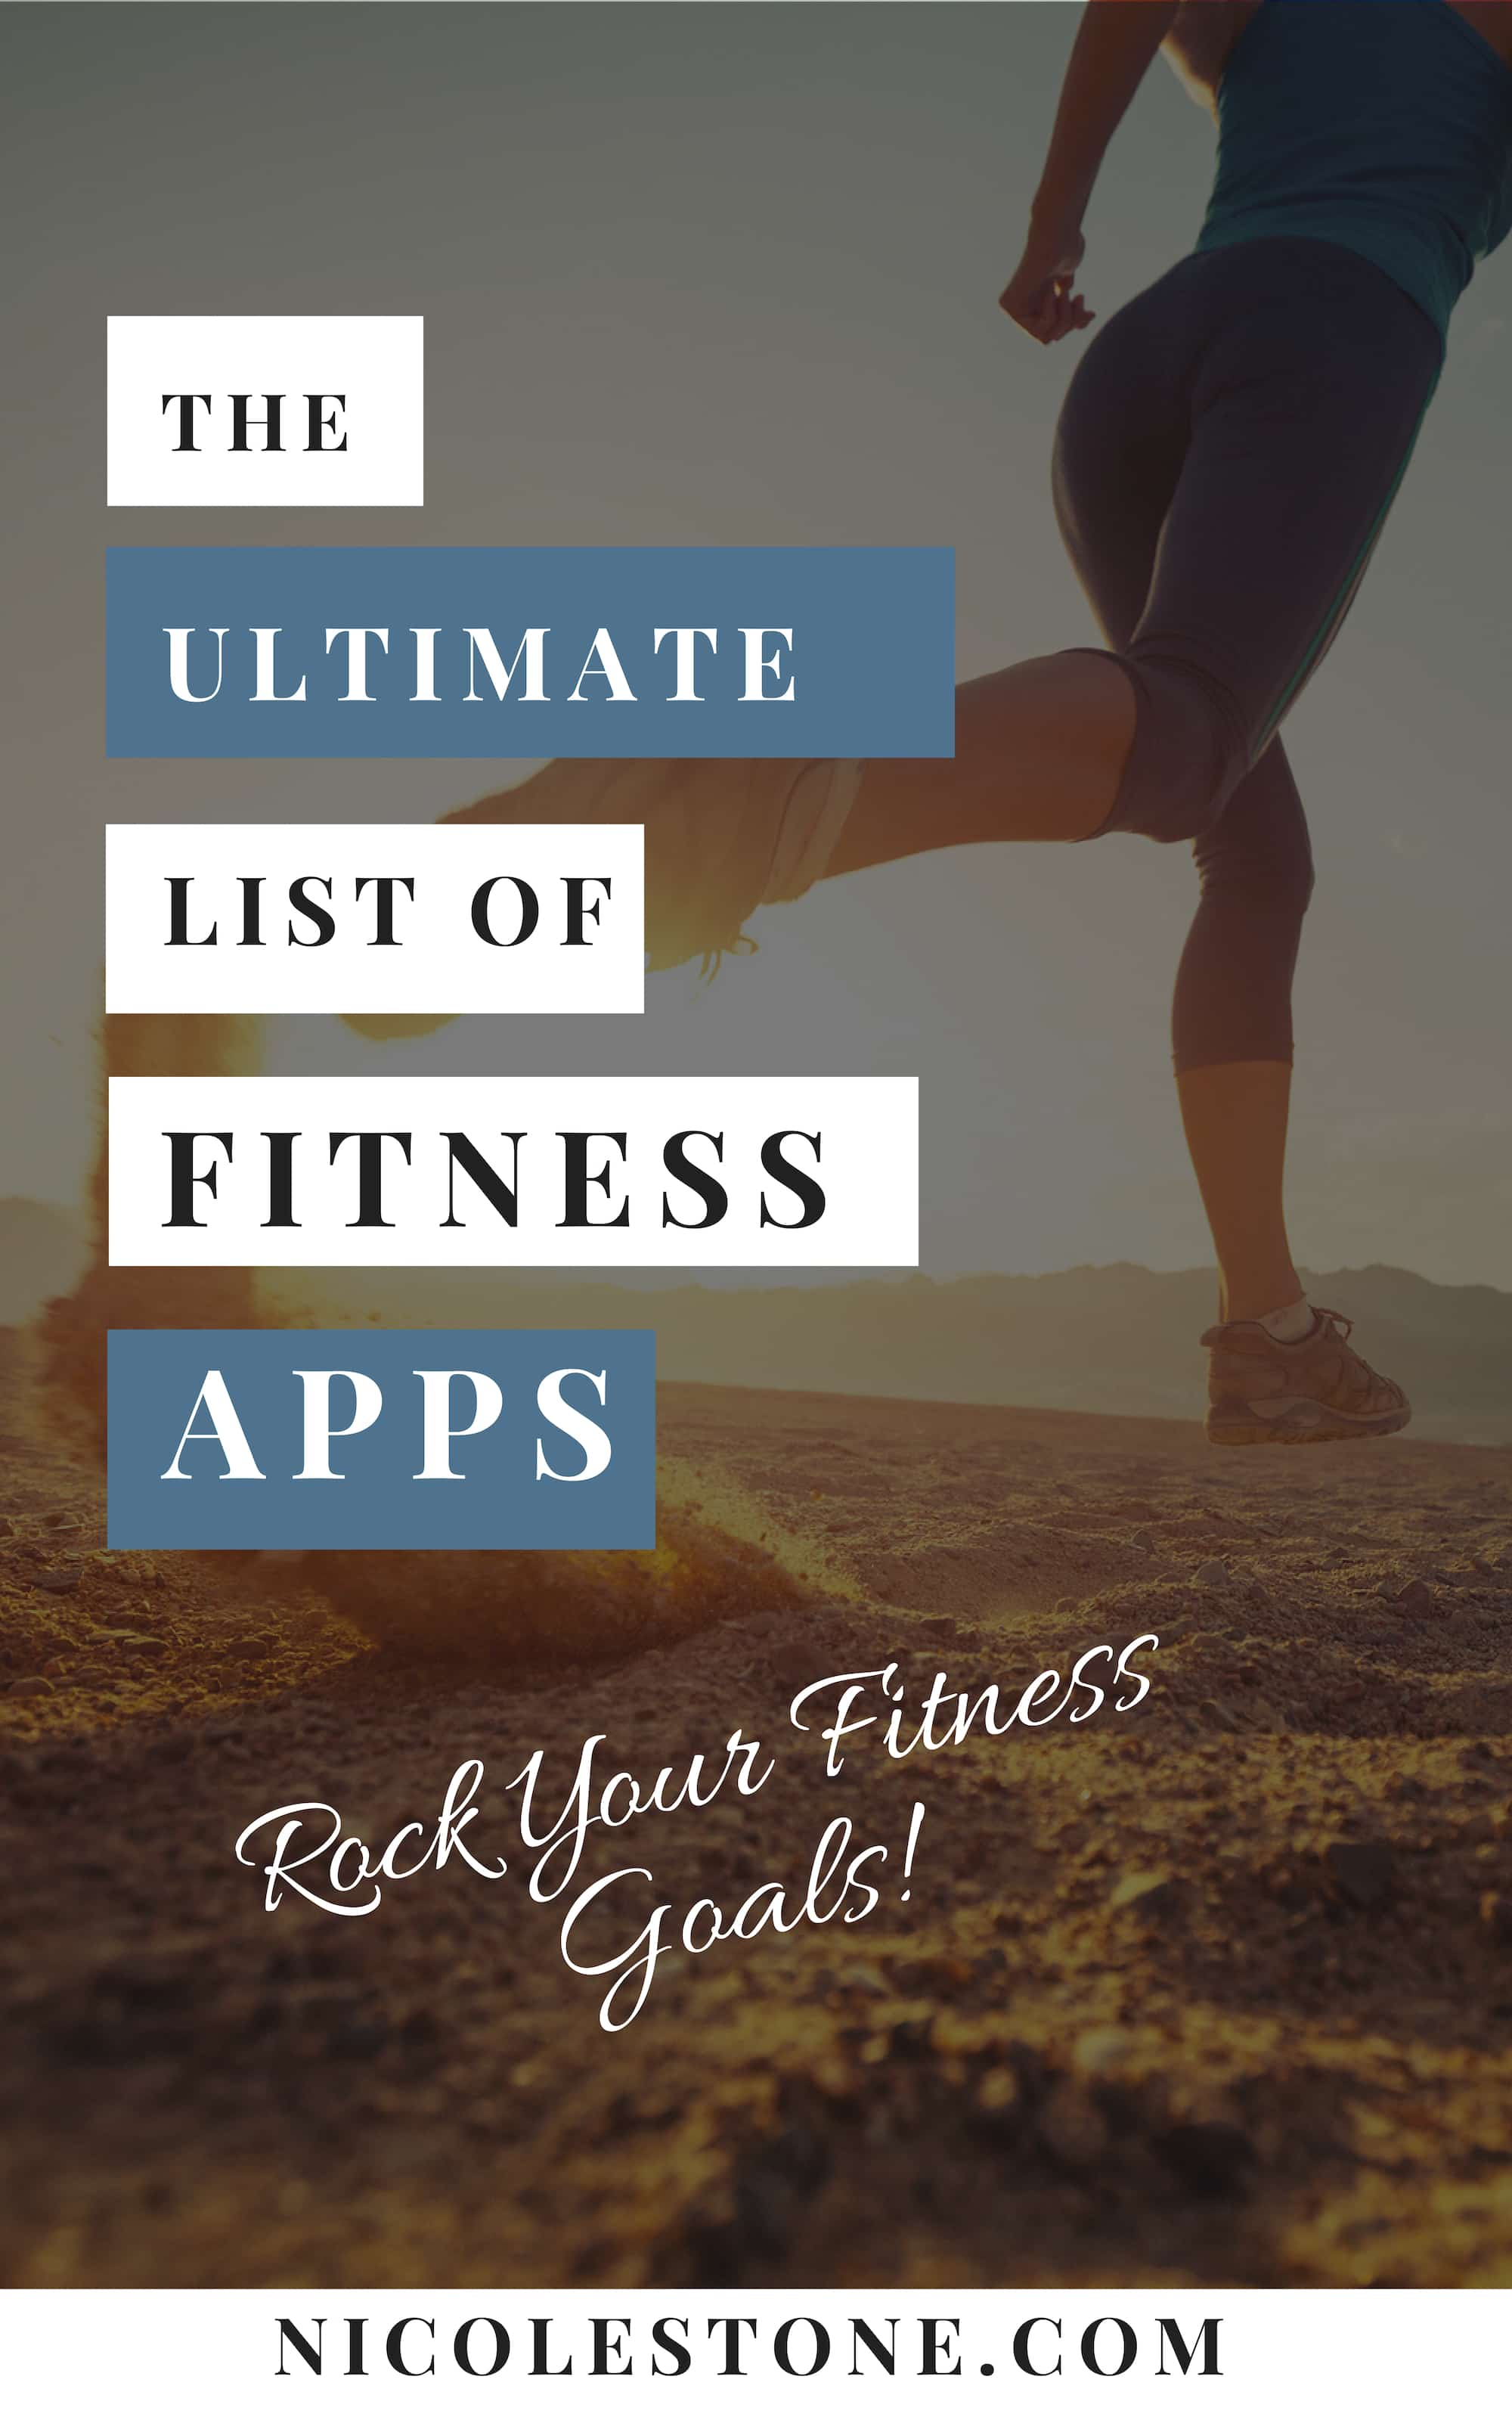 Compressed Ultimate List of Fitness Apps Pin 3 (coverpin)-min.jpg